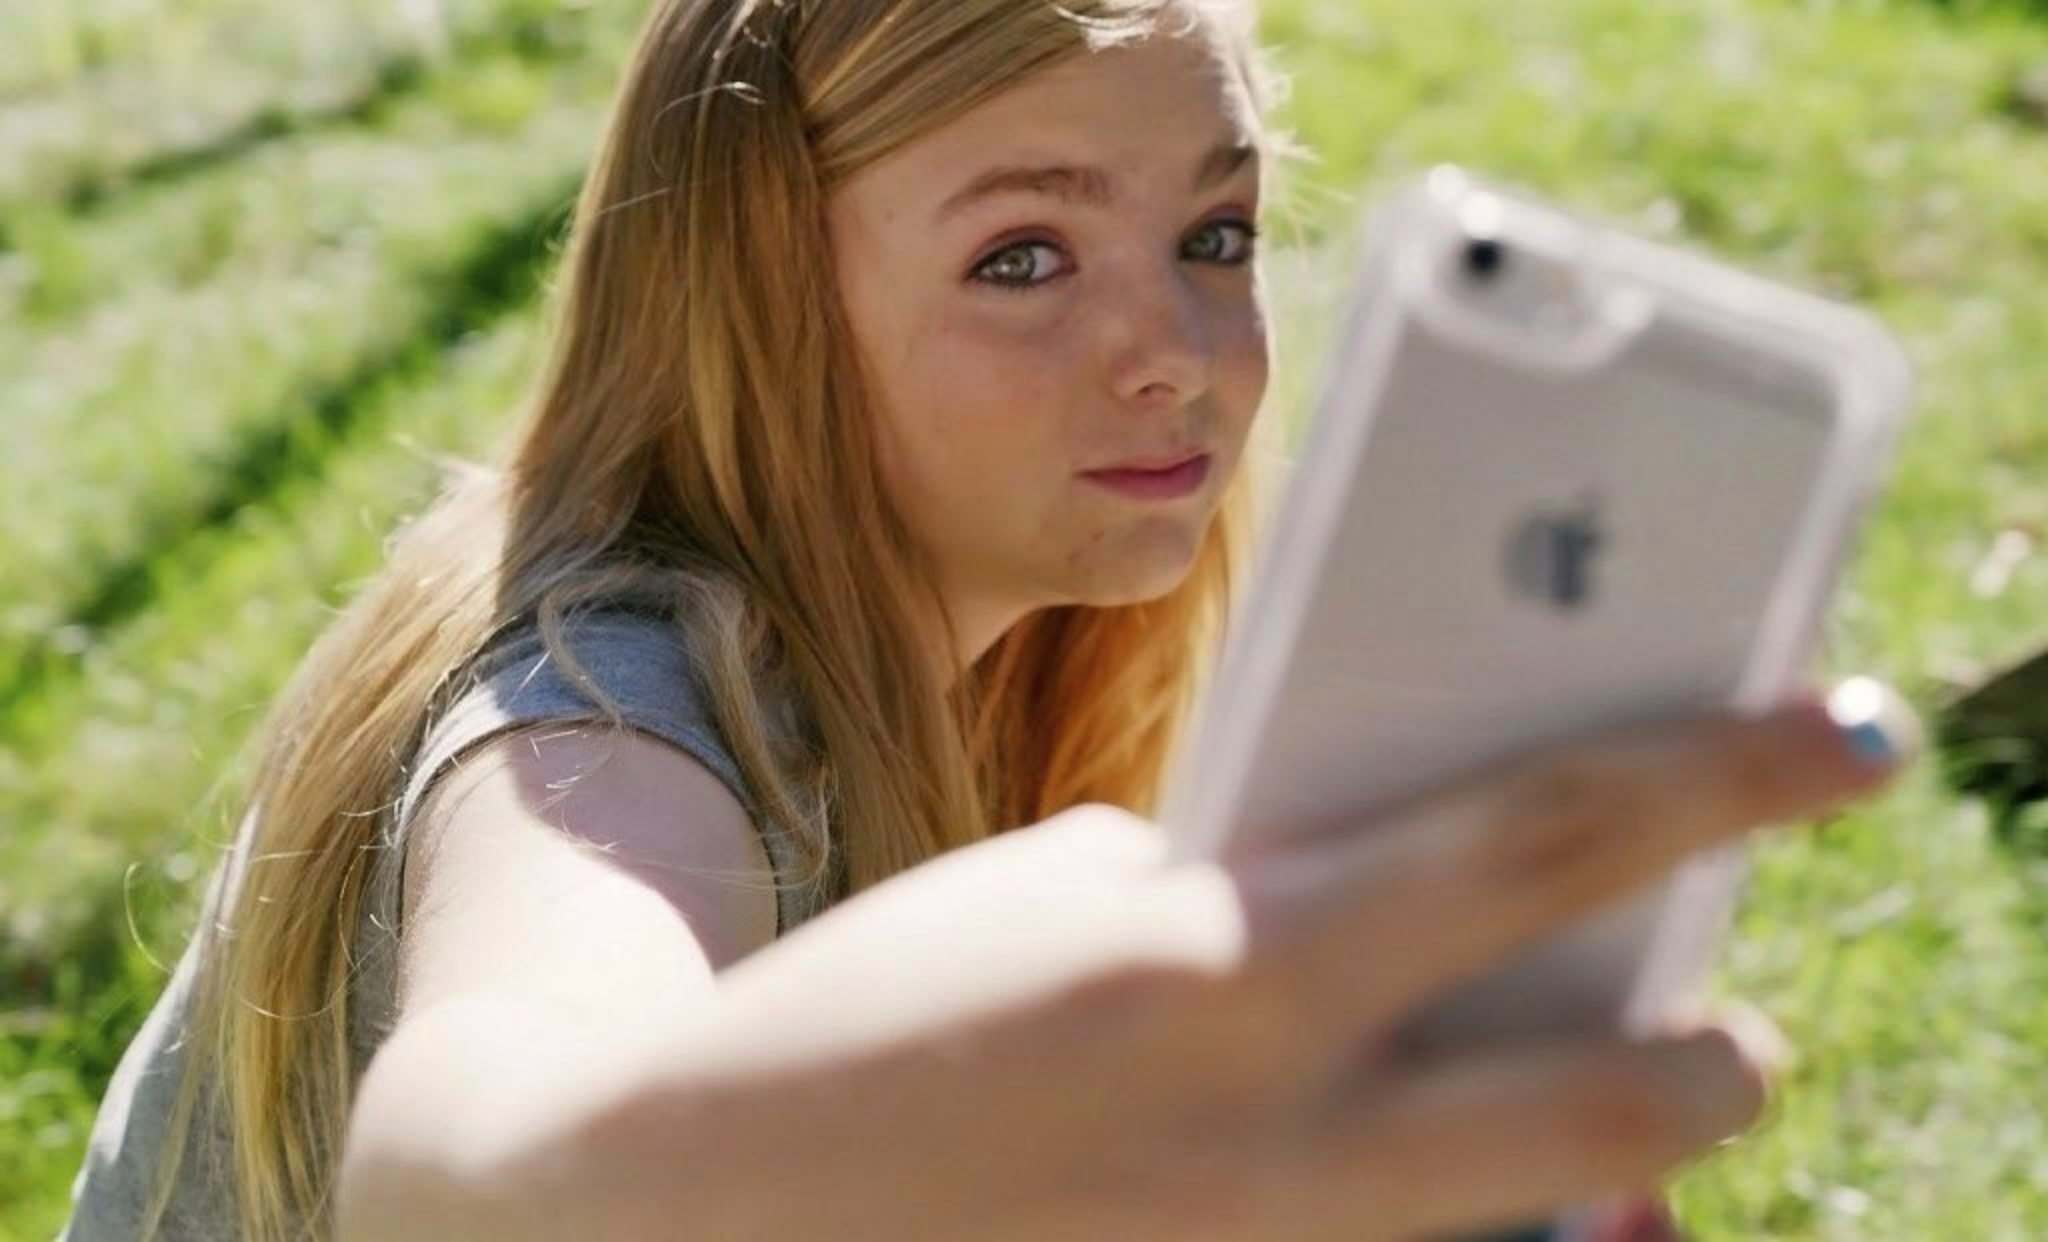 The accurate use of technology in the film helps Eighth Grade feel realistic.